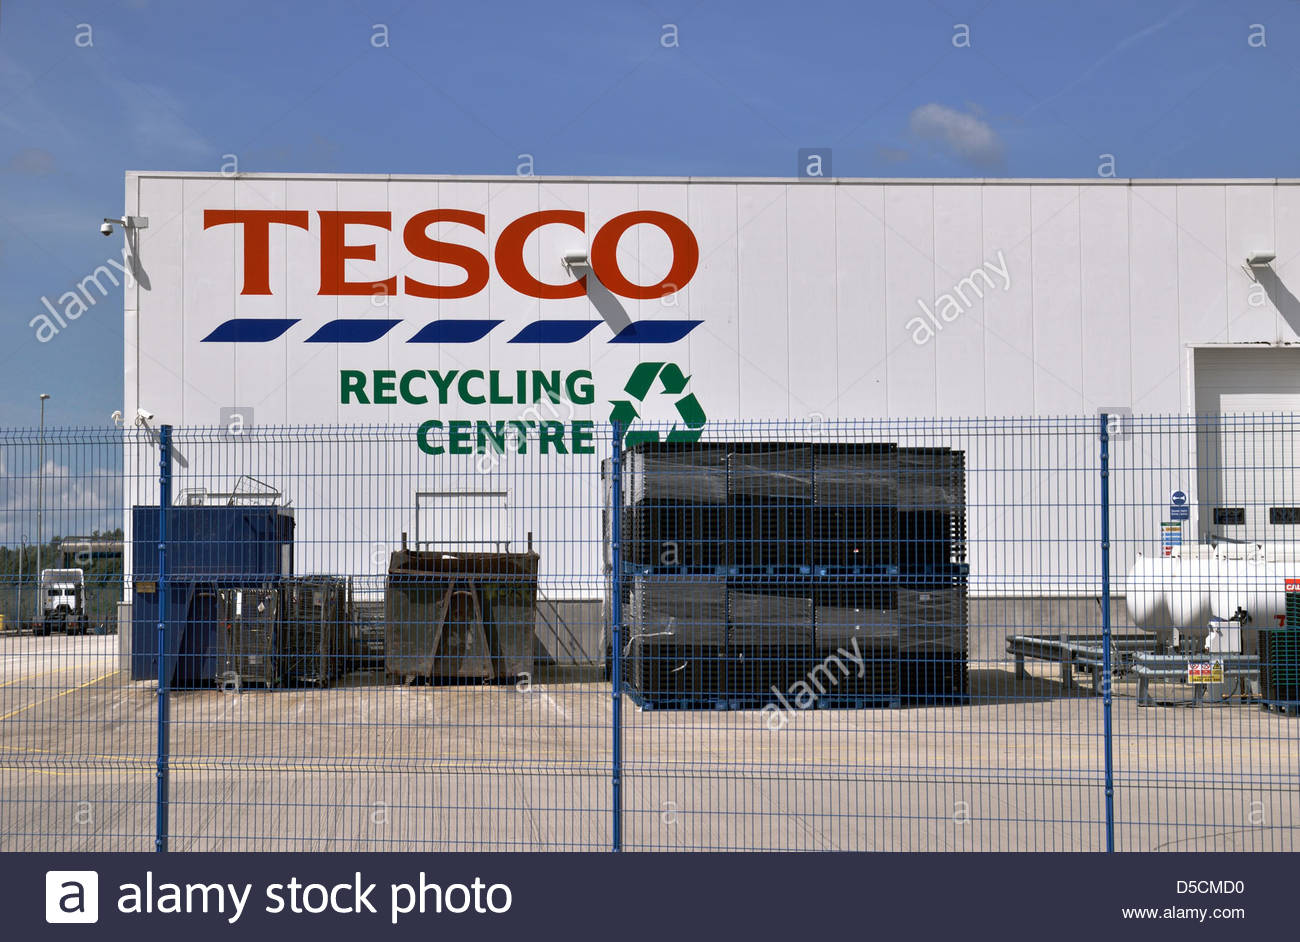 Tesco recycling centre for chilled goods and packaging recycling, Widnes, Cheshire - Stock Image